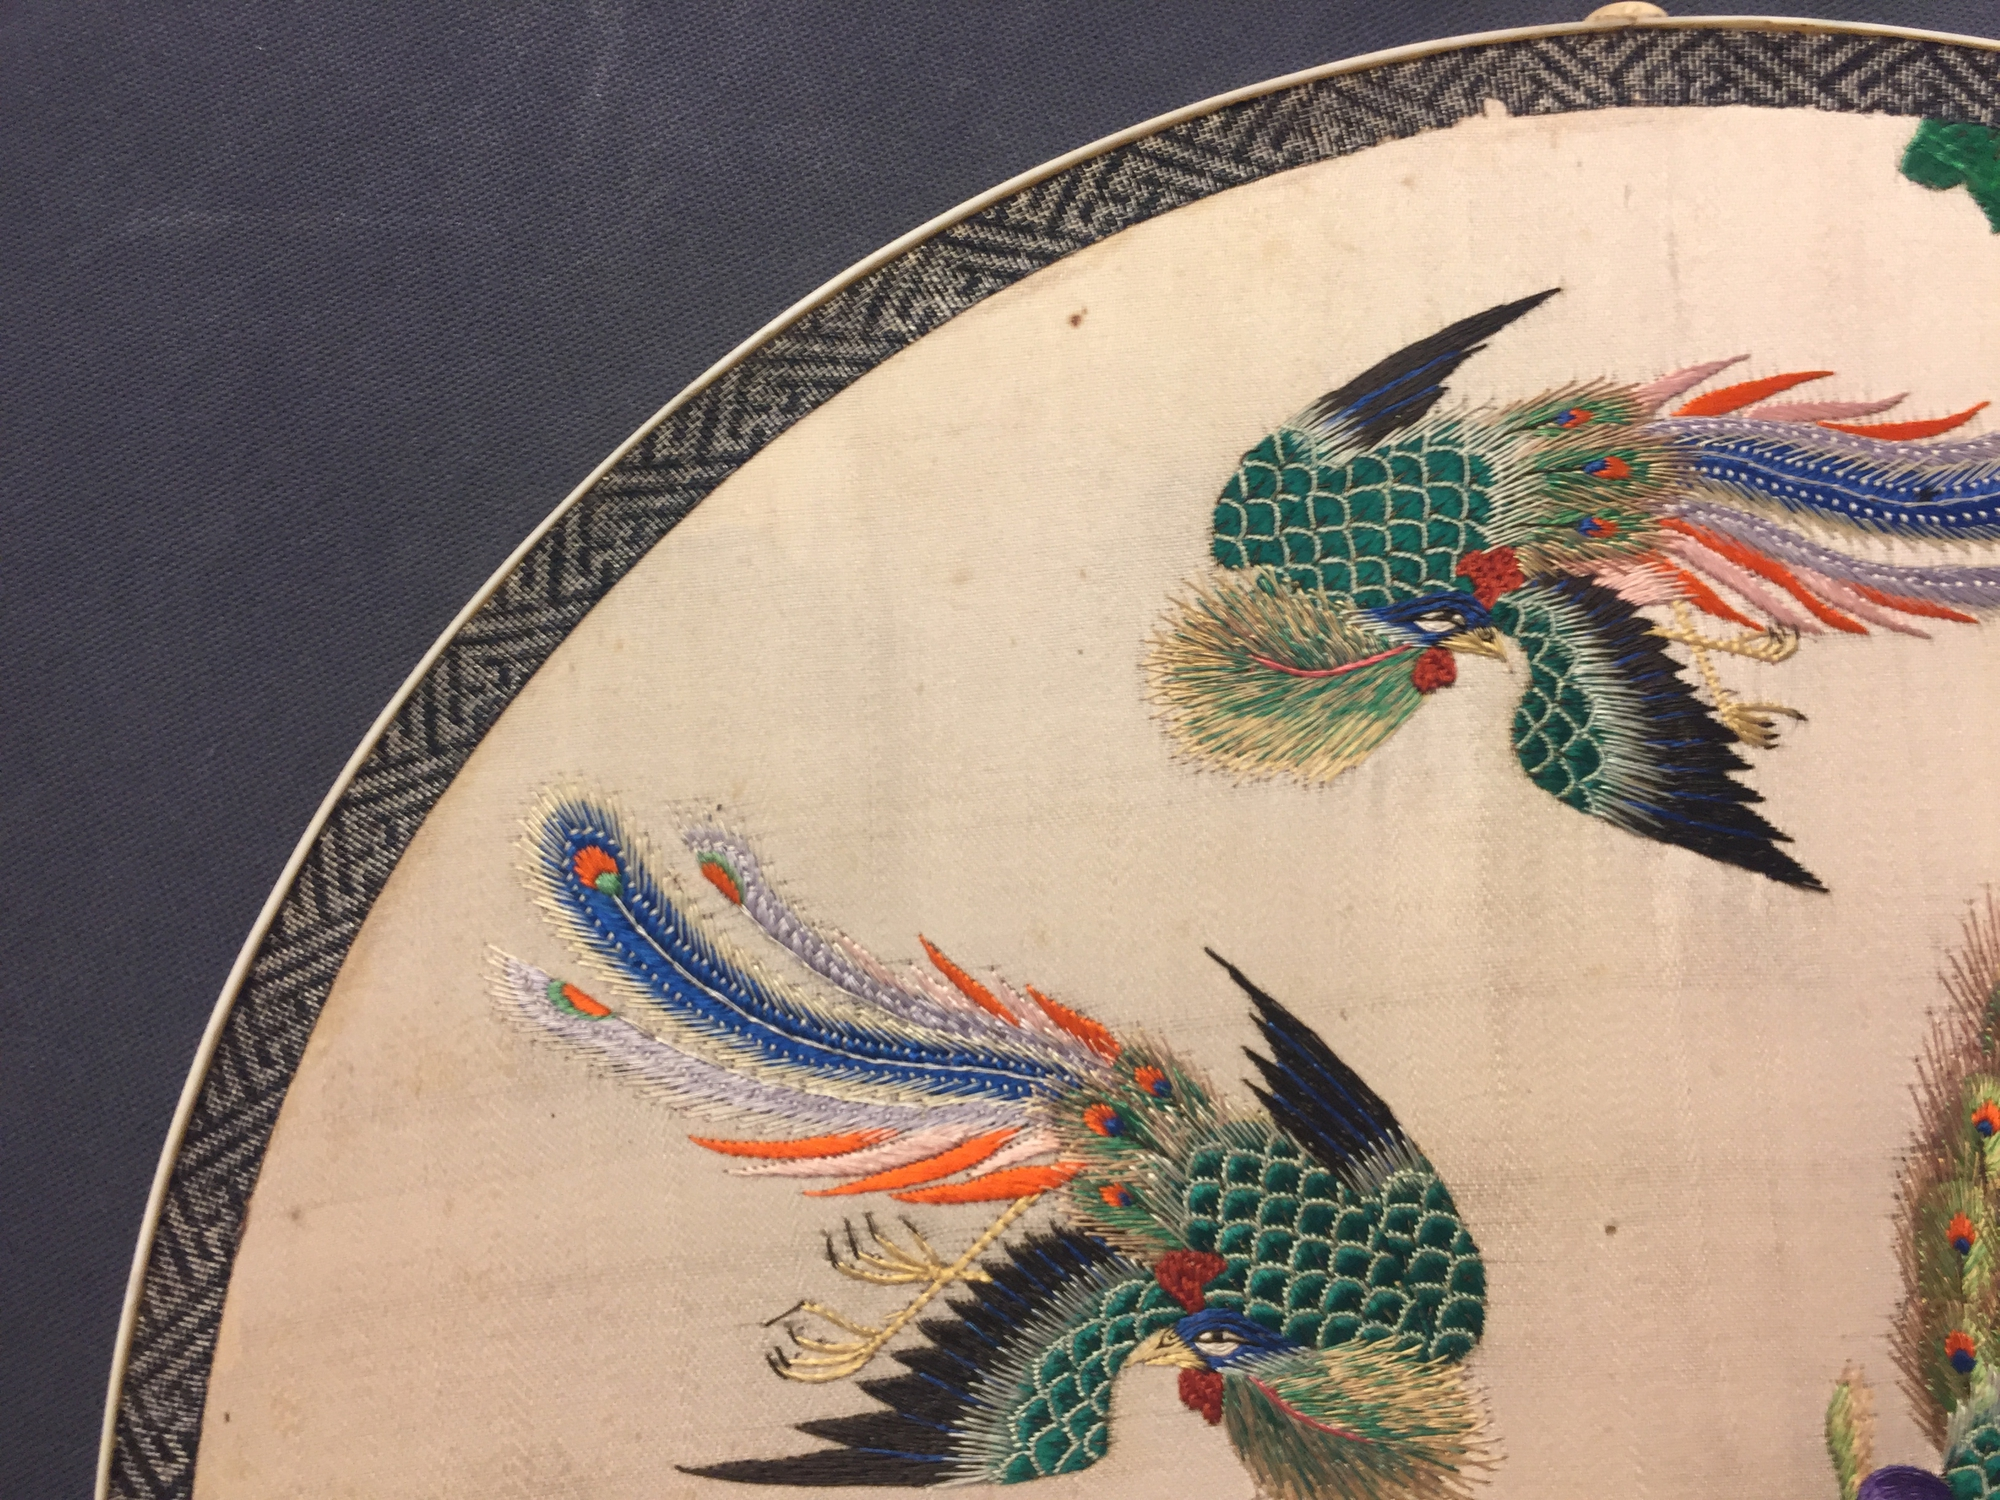 Two Chinese embroidered silk pien mien fans with ivory handle, 18/19th C. - Image 13 of 61